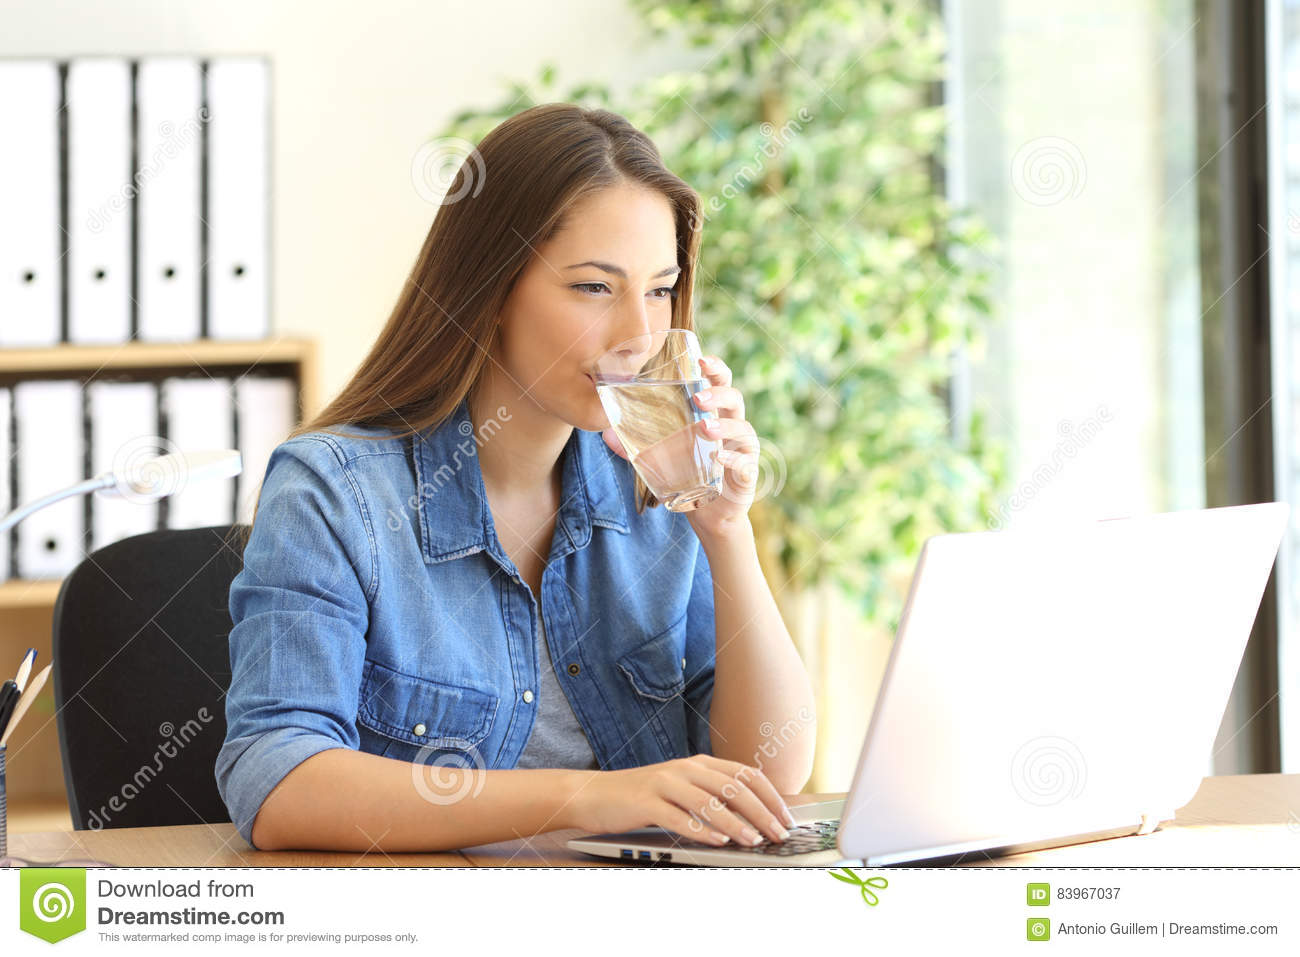 Entrepreneur drinking water and working